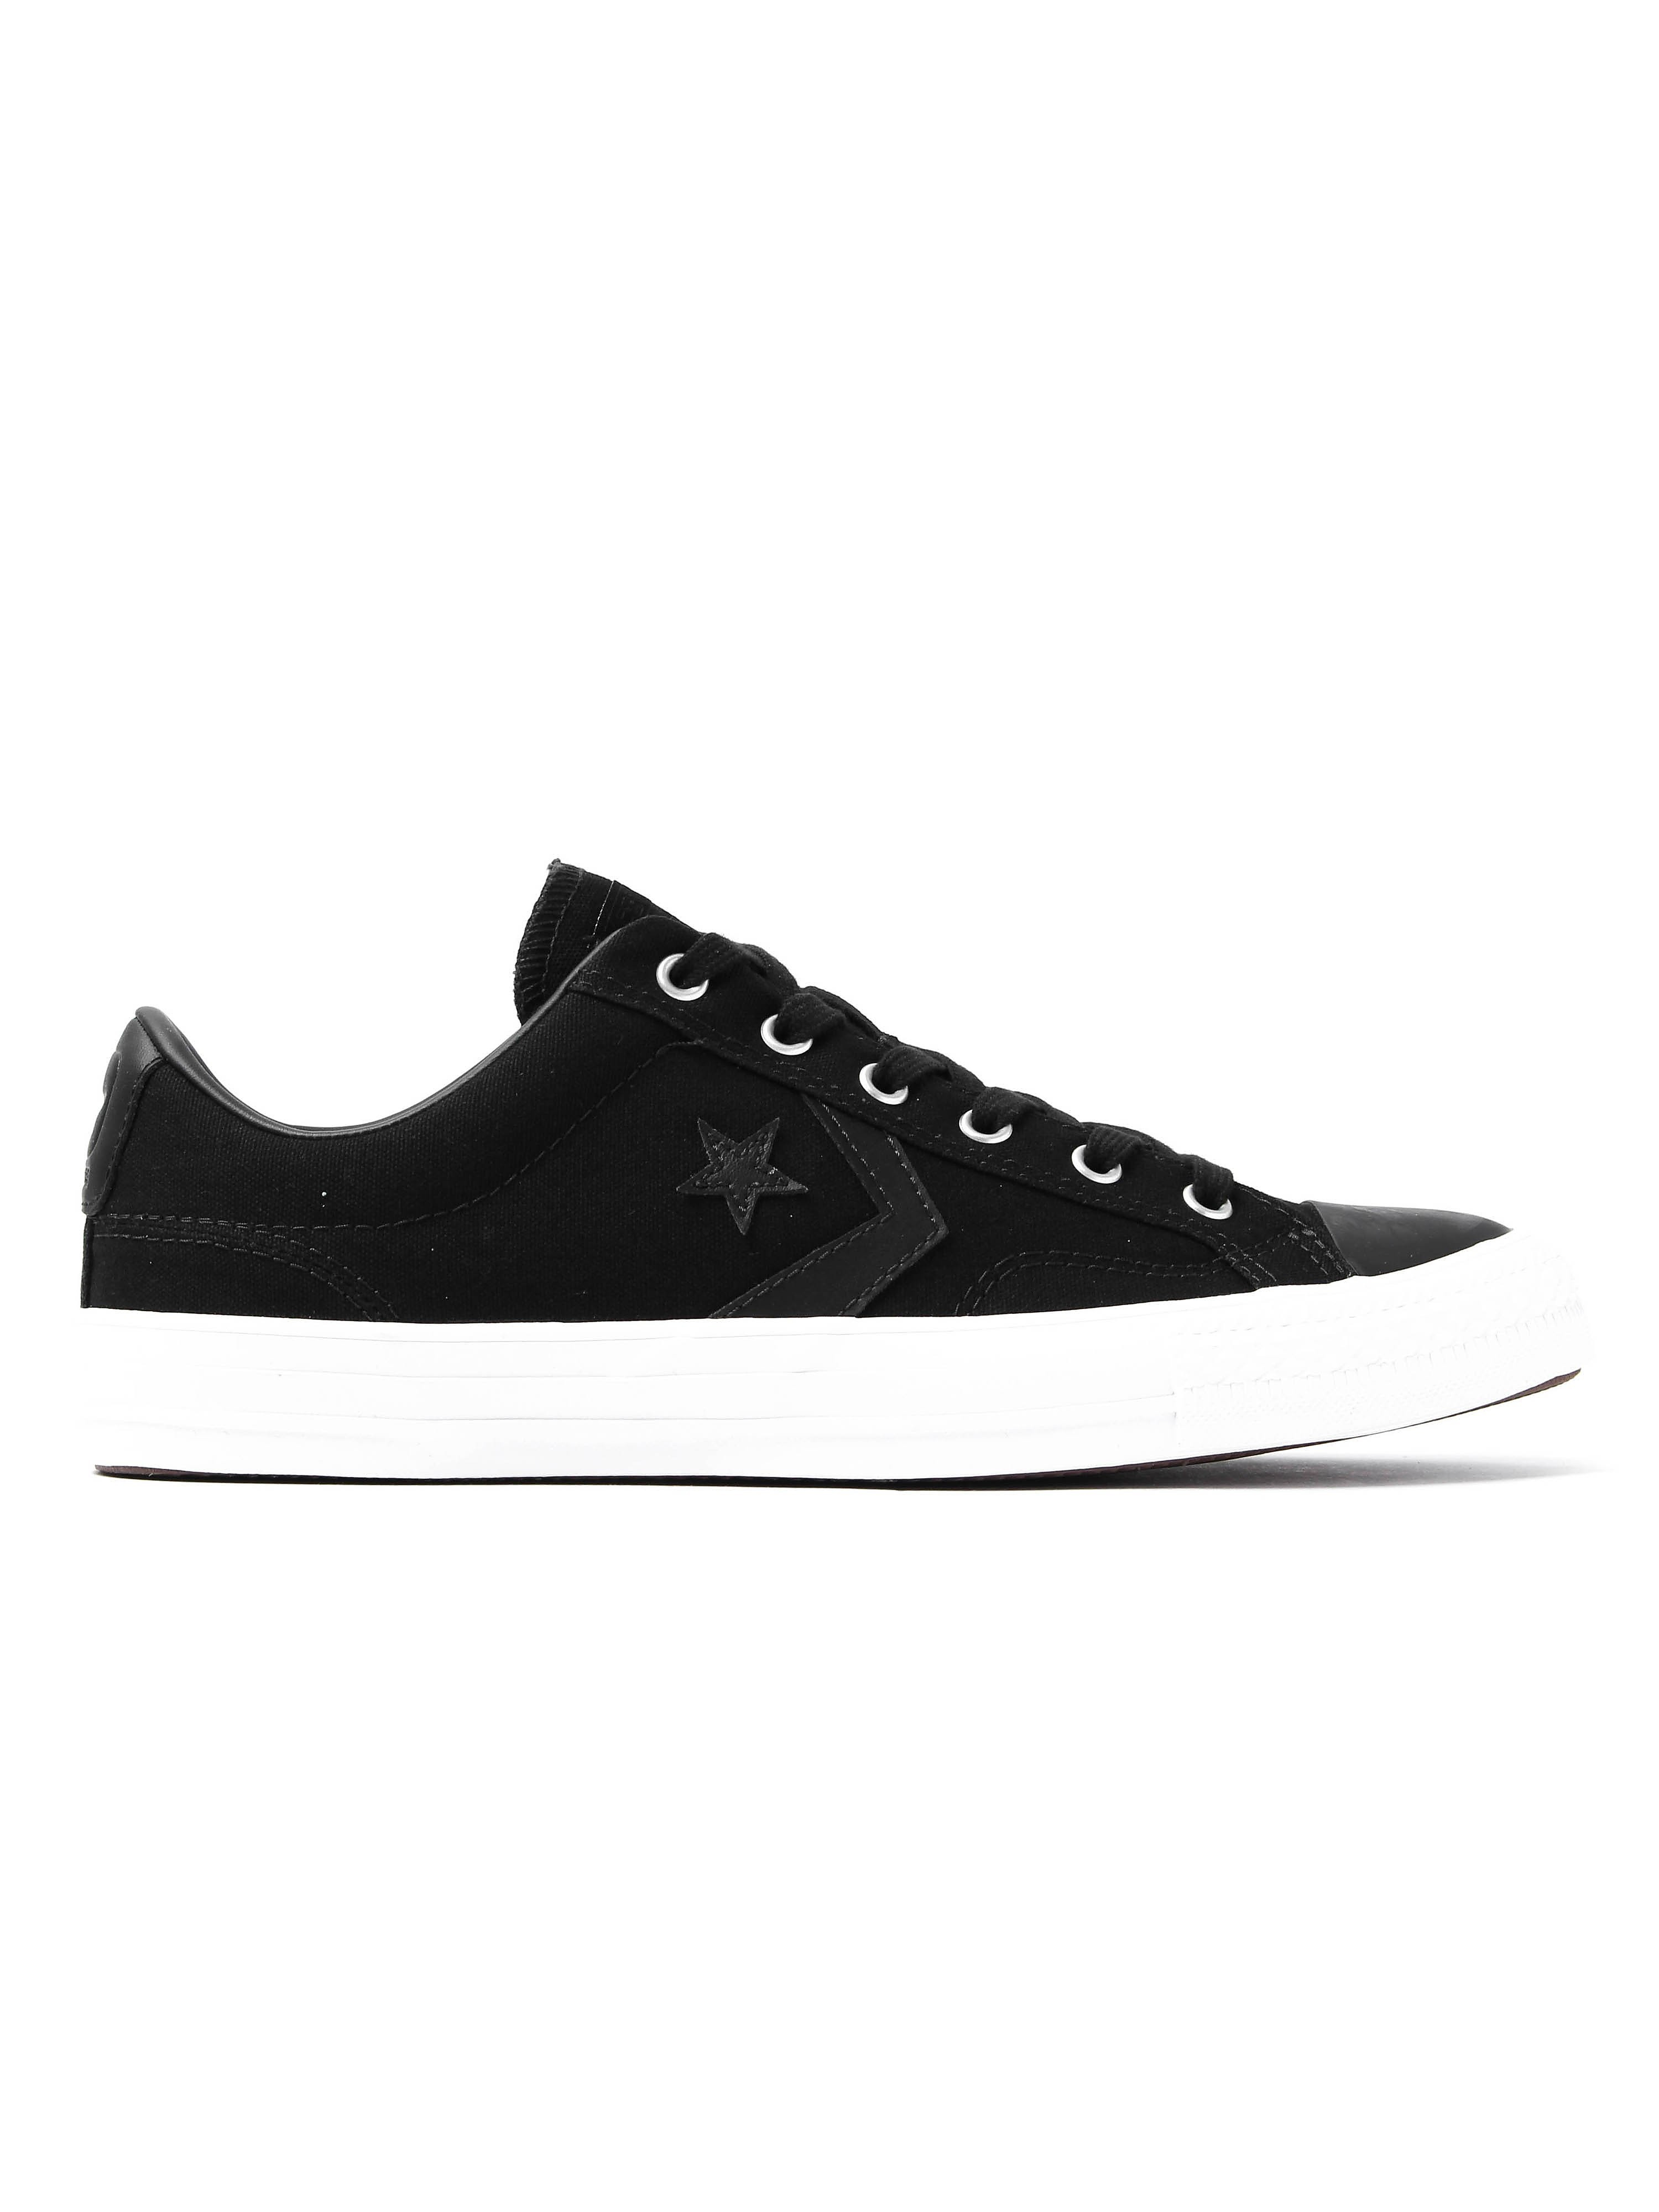 Converse Men's Star Player Trainers - Black